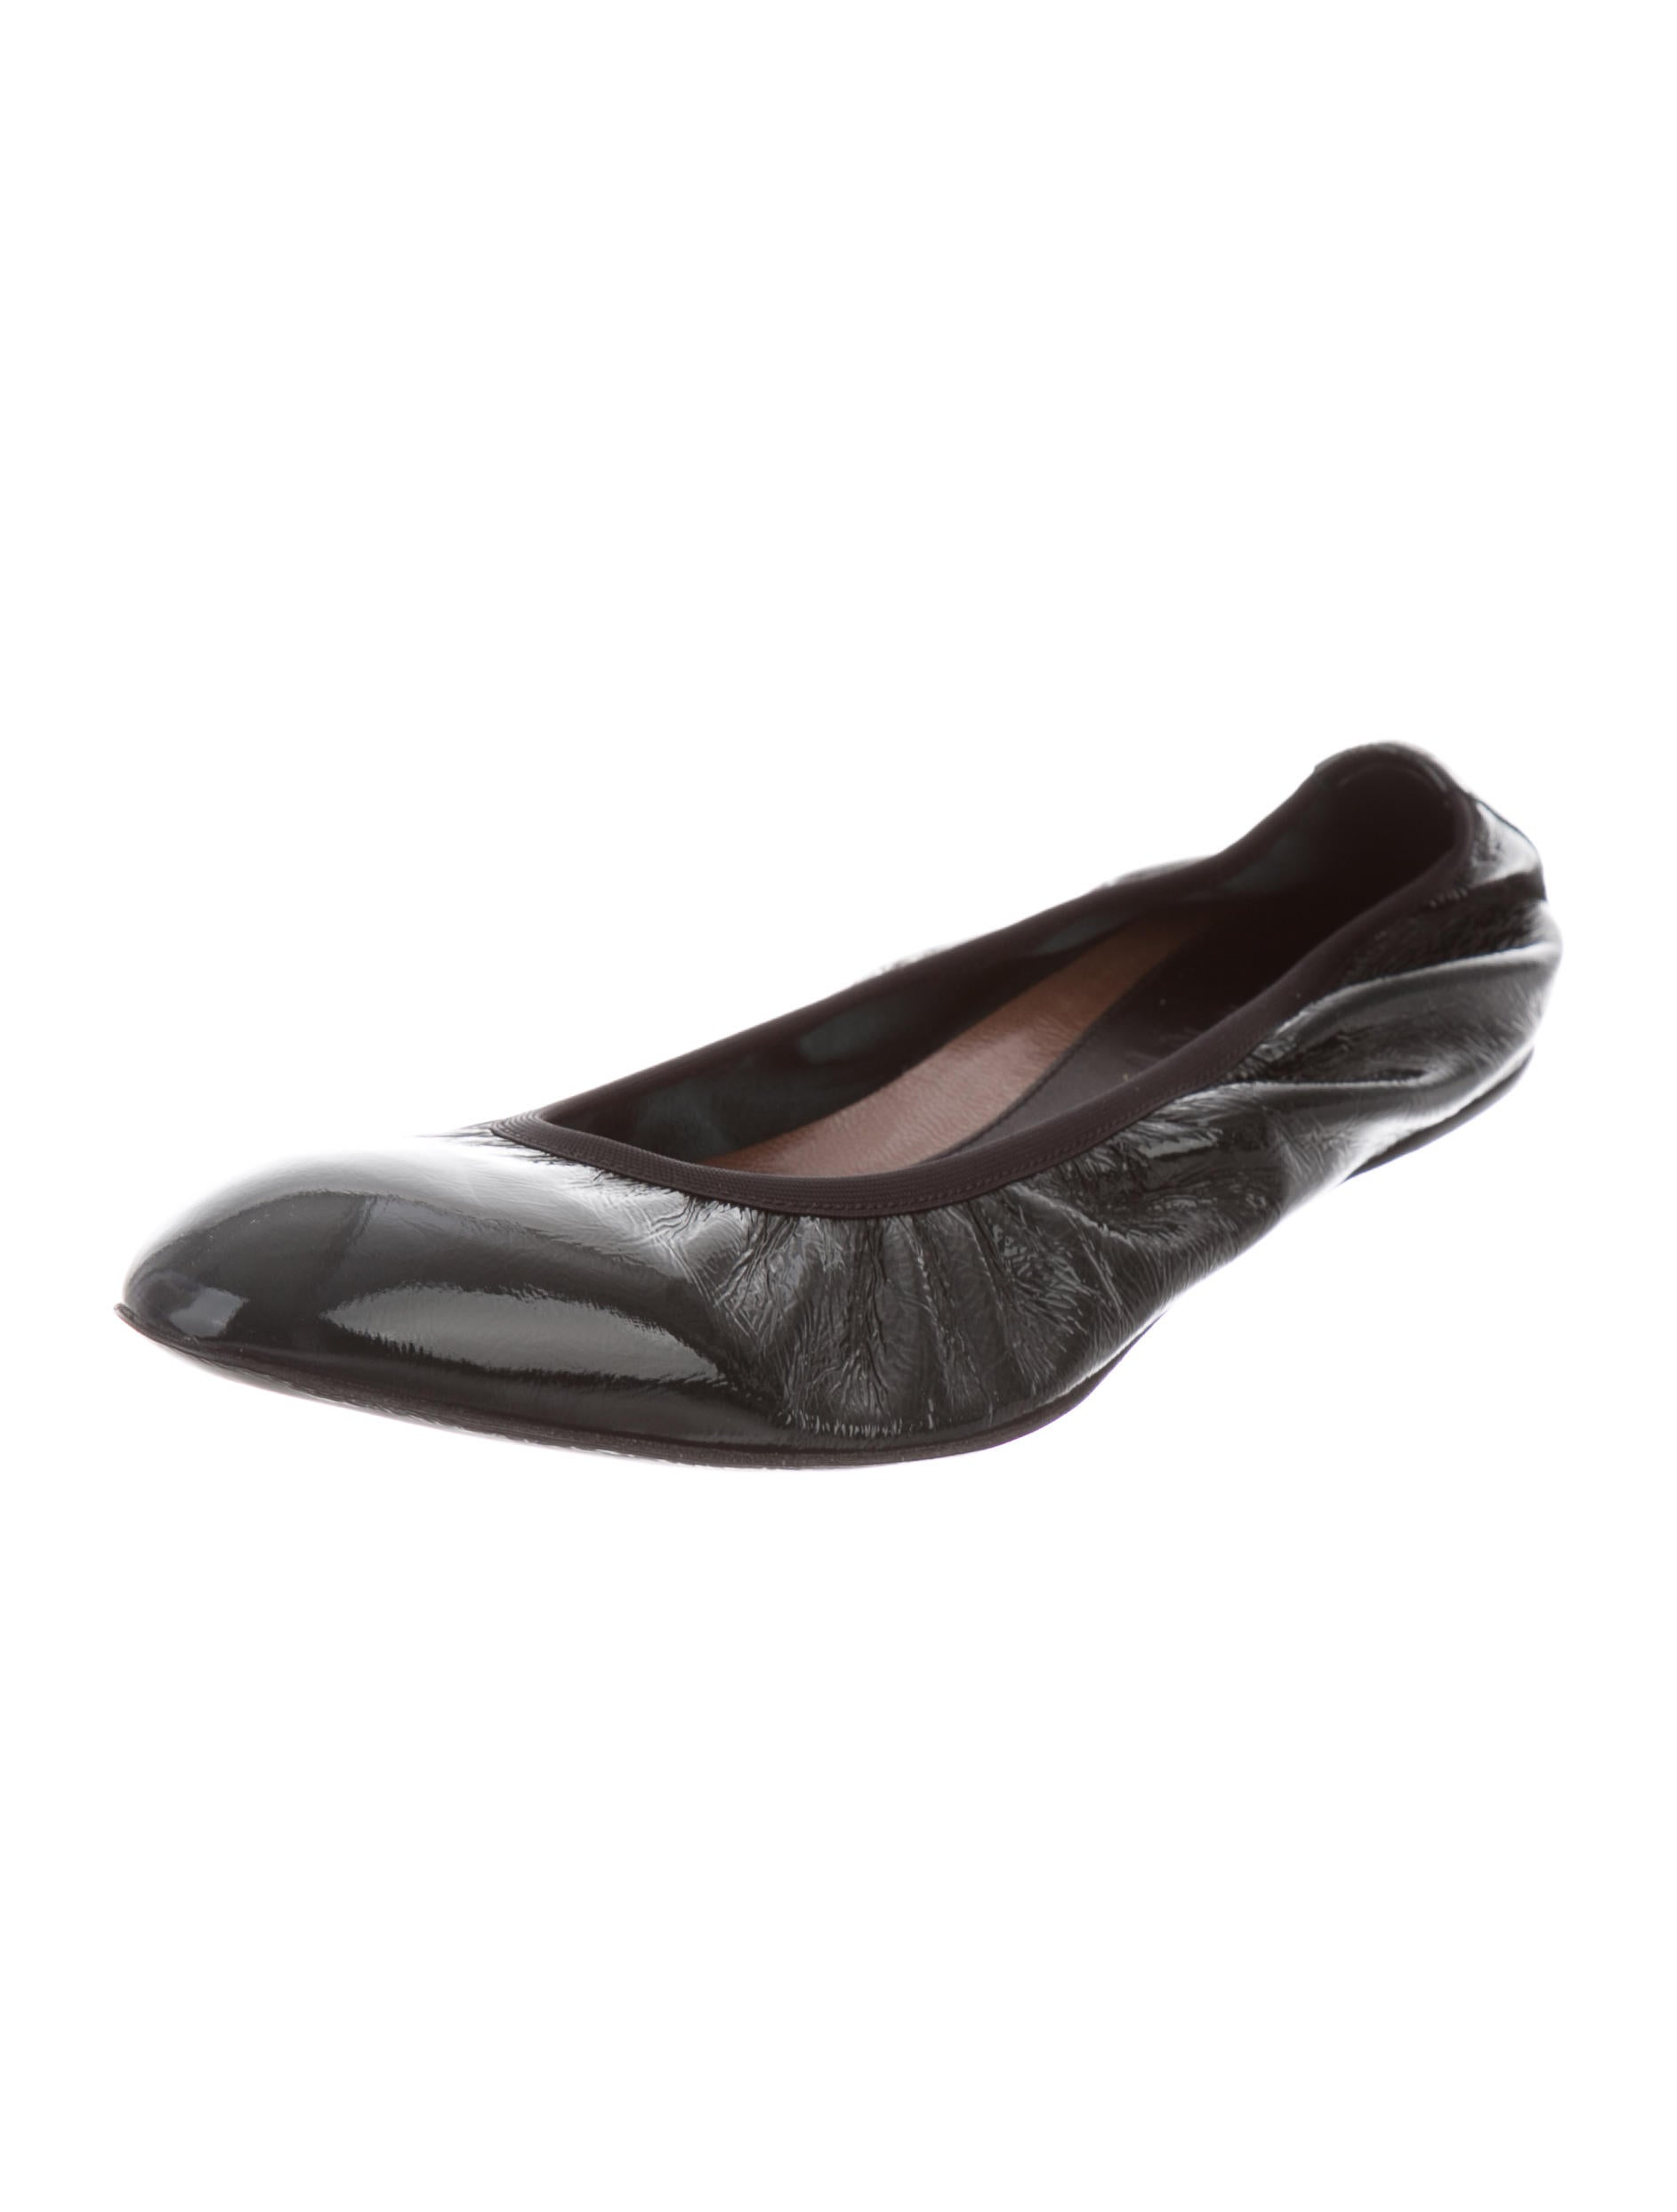 fashionable Marni Patent Leather Semi Pointed-Toe Flats cheap footlocker pictures buy online new cheap sale sneakernews t04KlKKDU